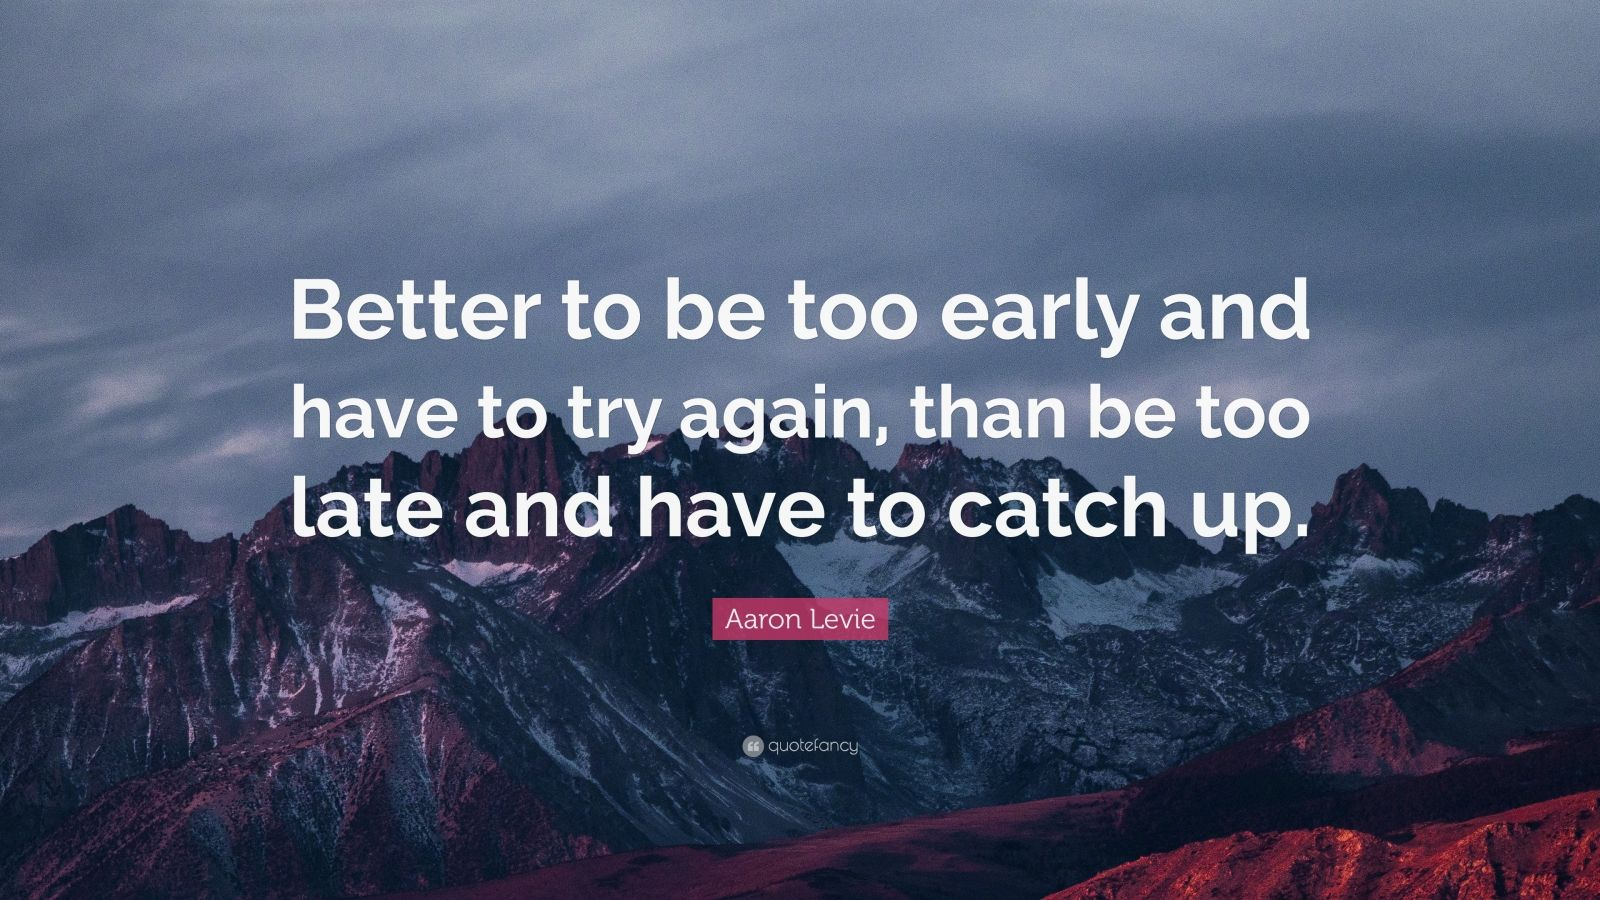 """Aaron Levie Quote: """"Better to be too early and have to try again, than be too late and have to catch up."""""""